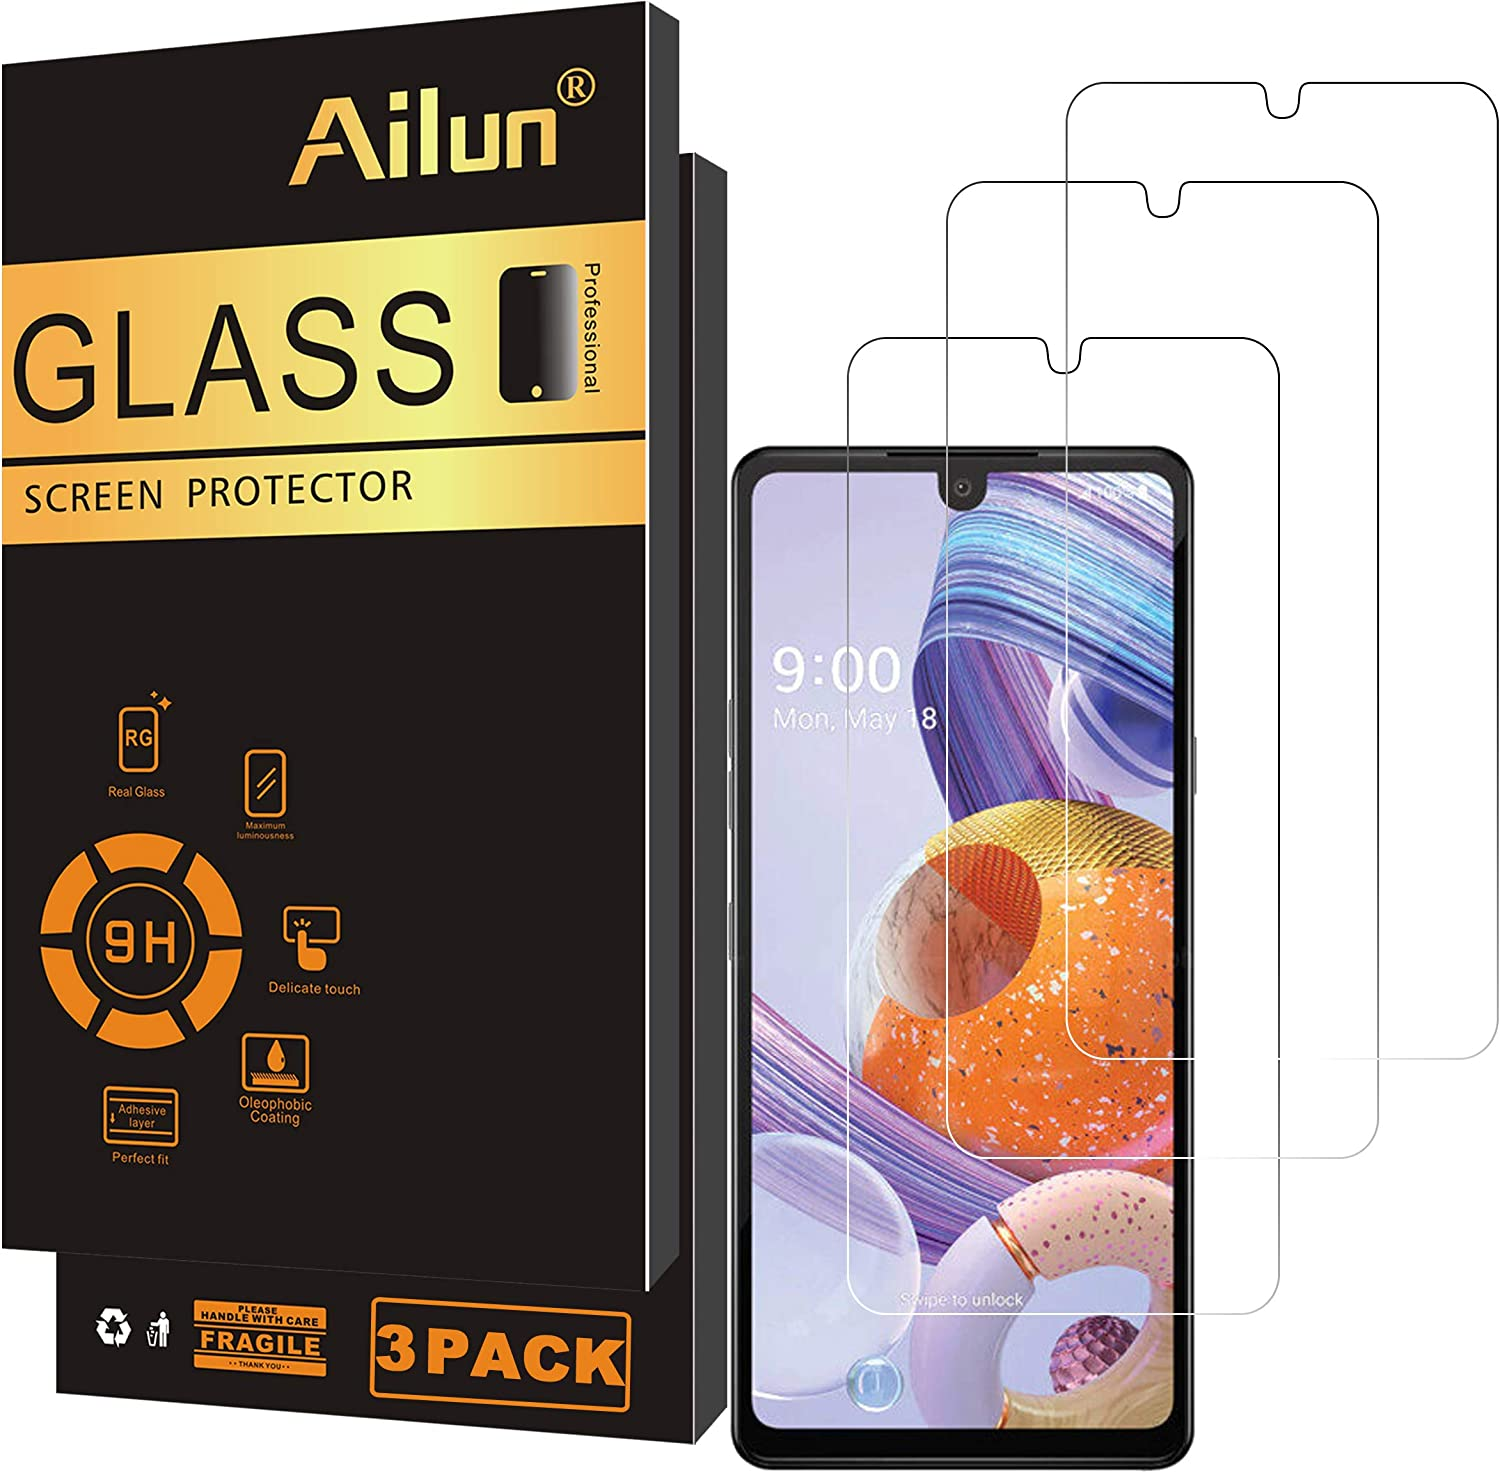 Ailun Screen Protector Compatible for LG stylo 6 3Pack 0.33mm 2.5D Edge Tempered Glass,Anti-Scratch,Case Friendly